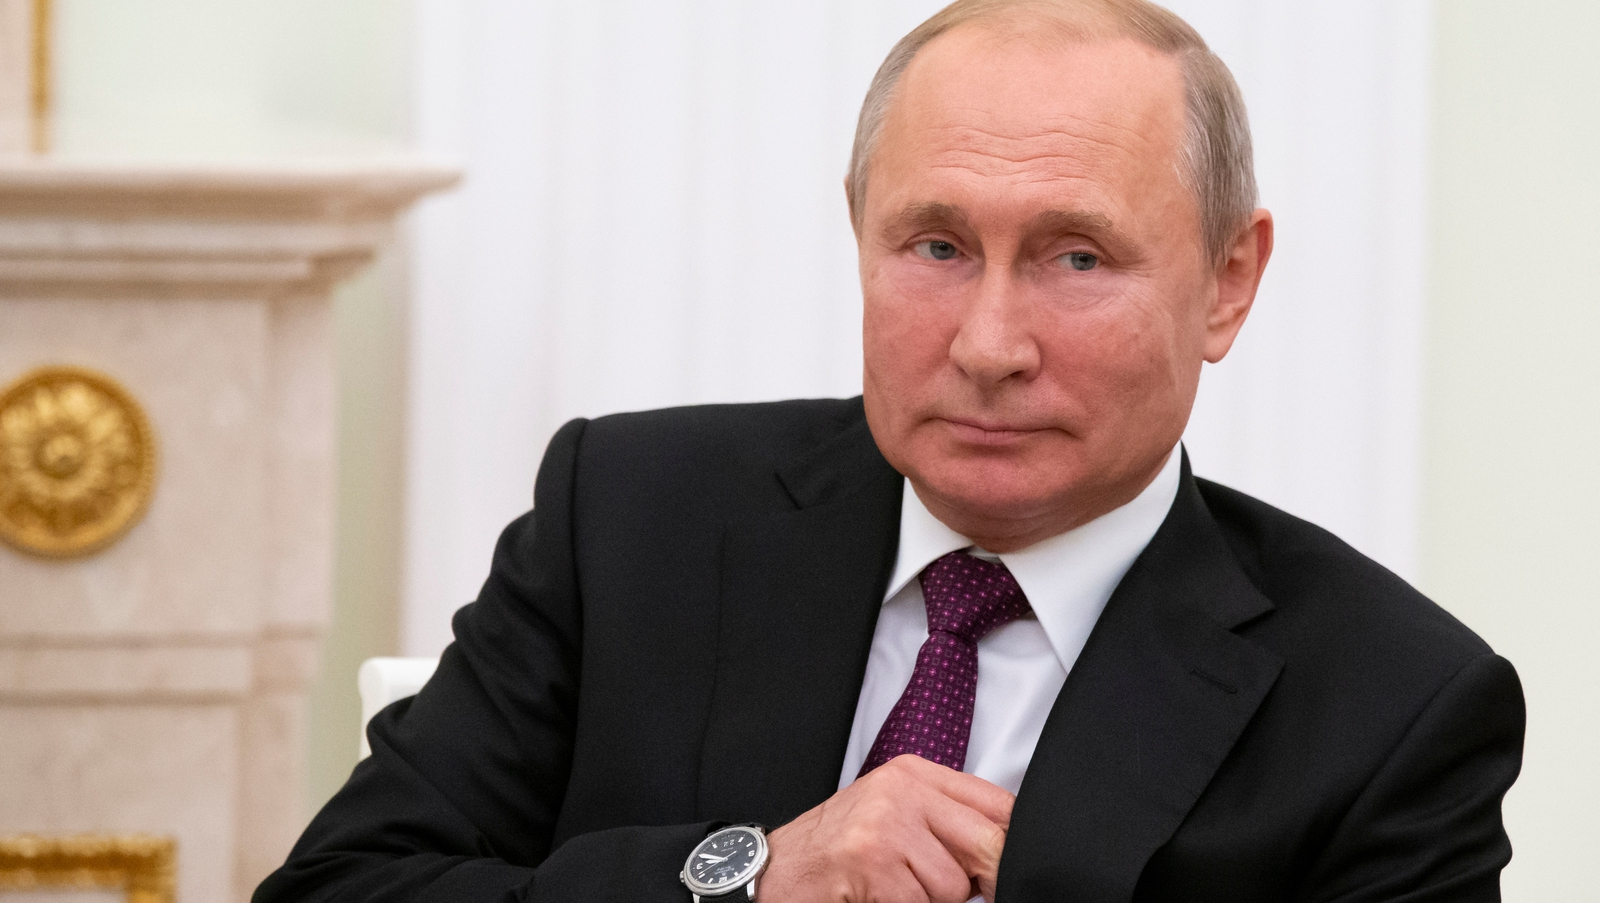 Russians opened the door to Vladimir Putin staying in power until 2036 by voting overwhelmingly for constitutional changes that will allow him to run again for president twice.